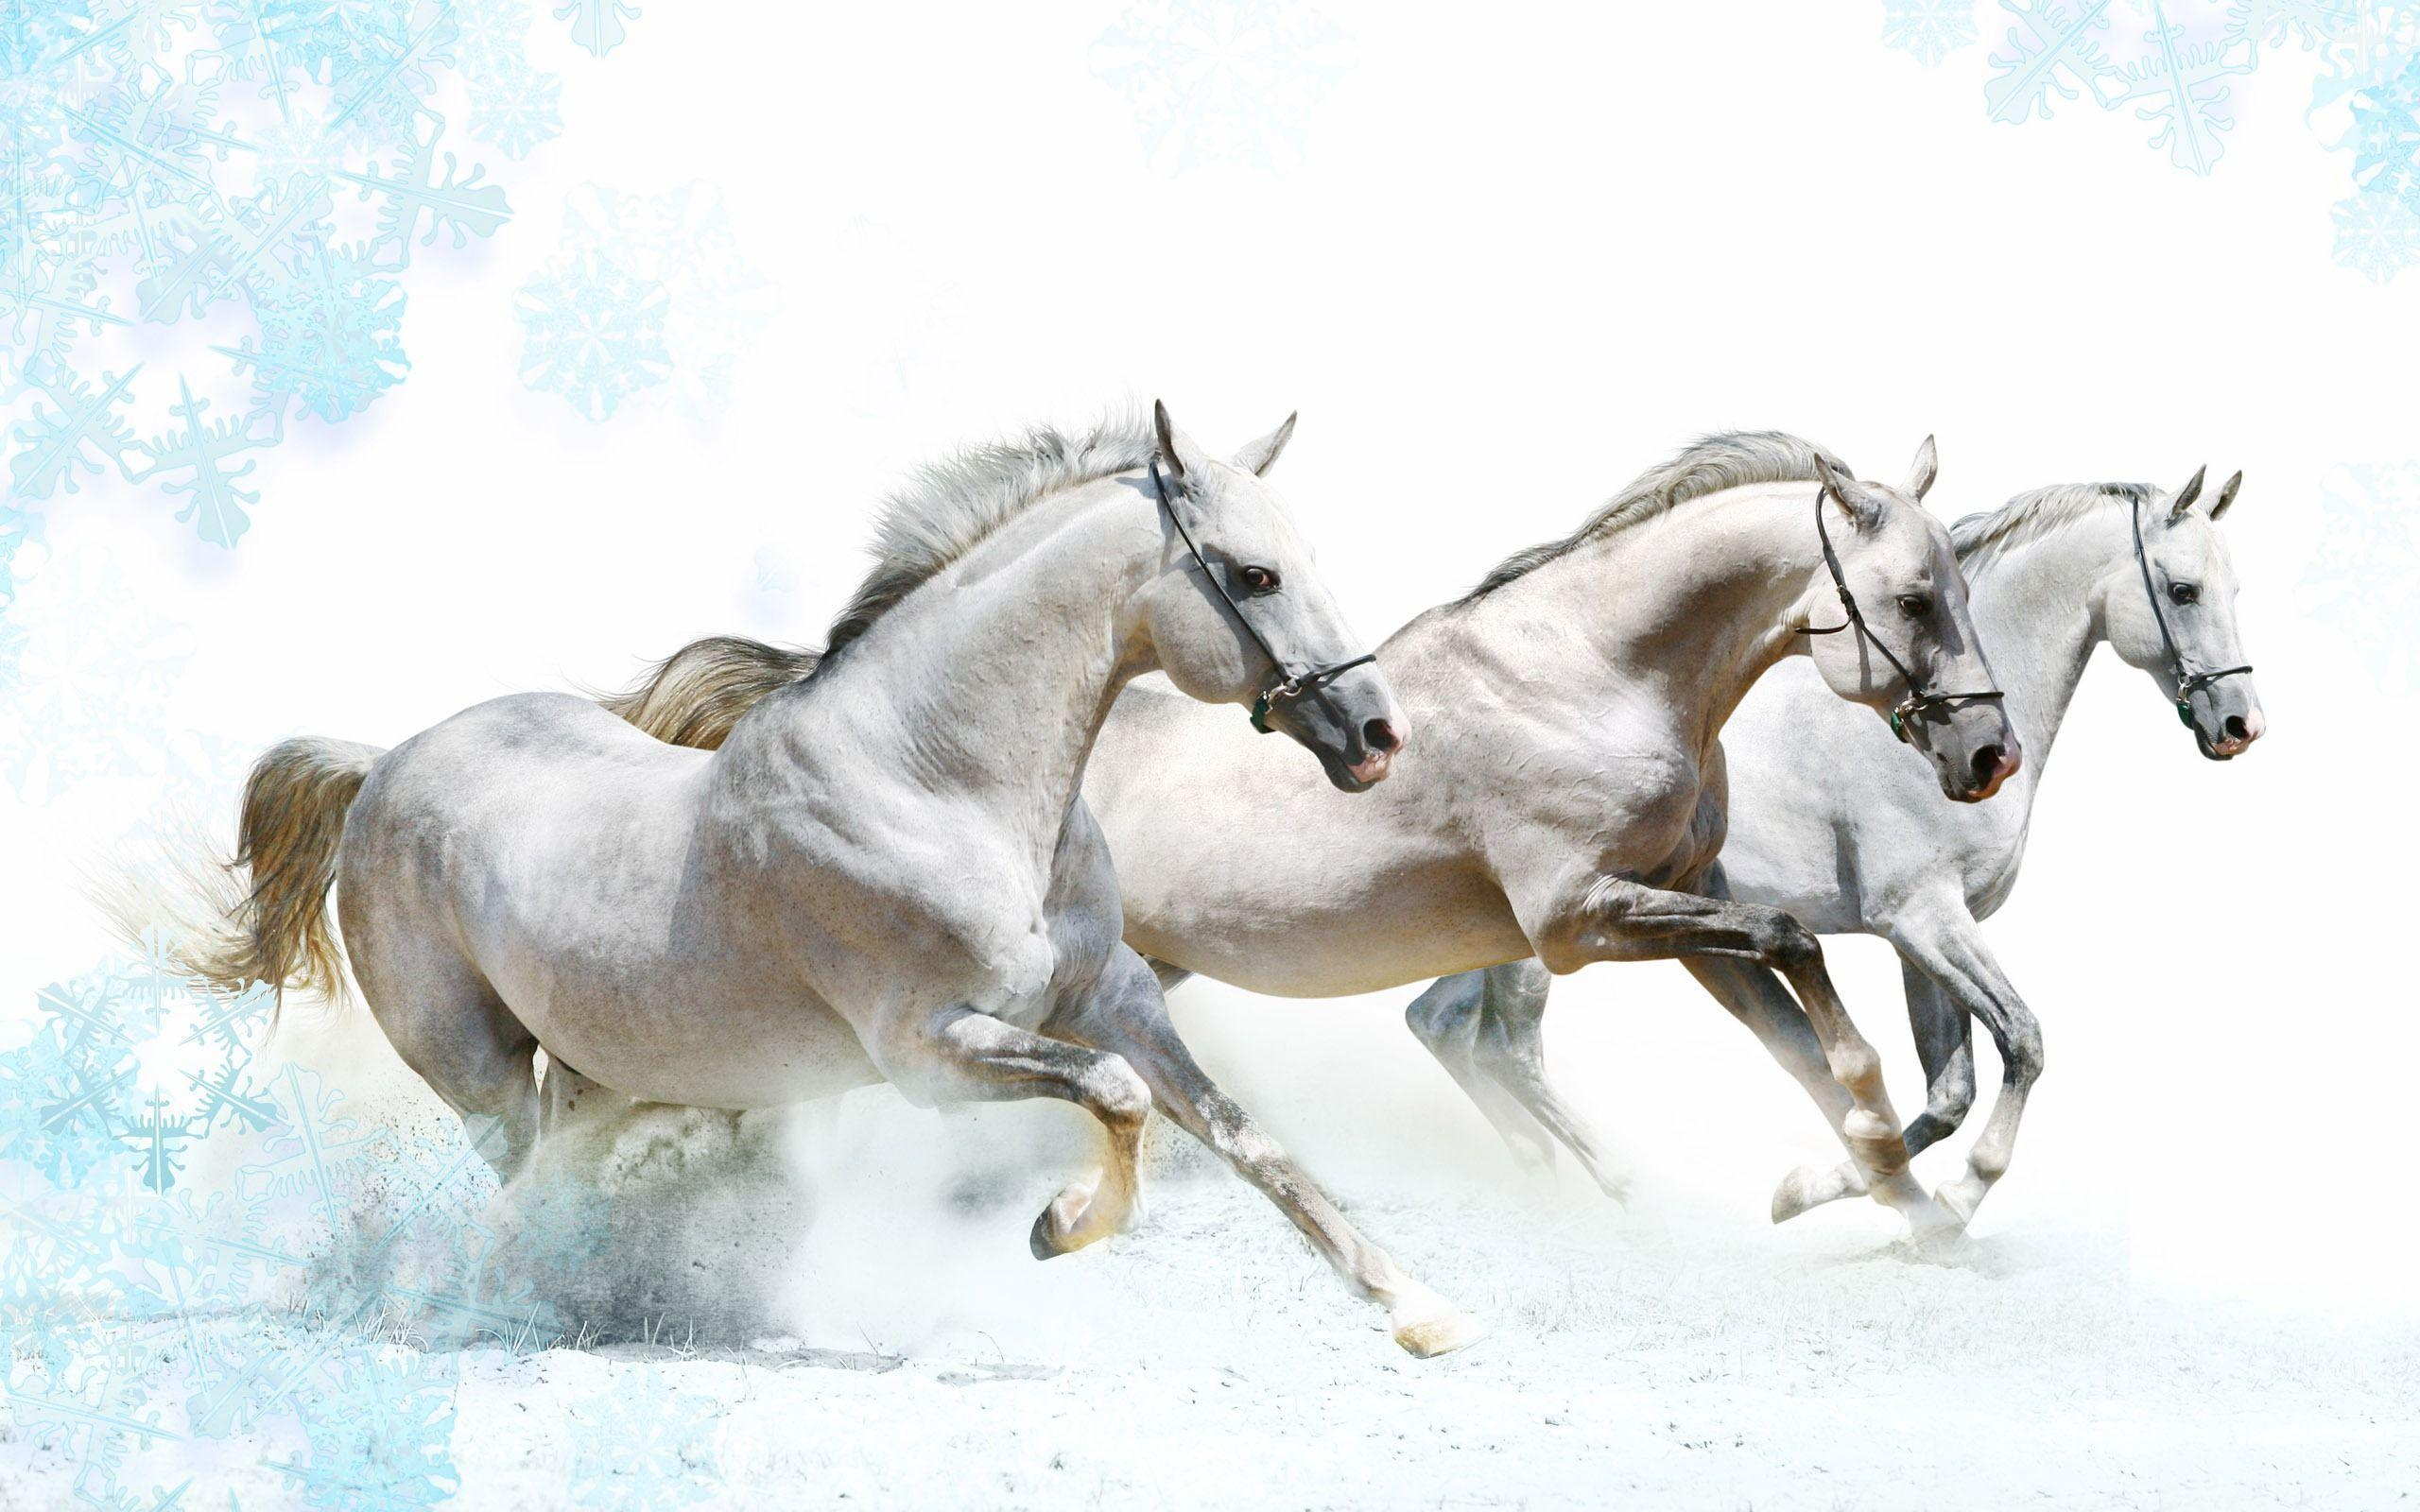 White Horse Hd Wallpapers For Mobile Labzada Wallpaper